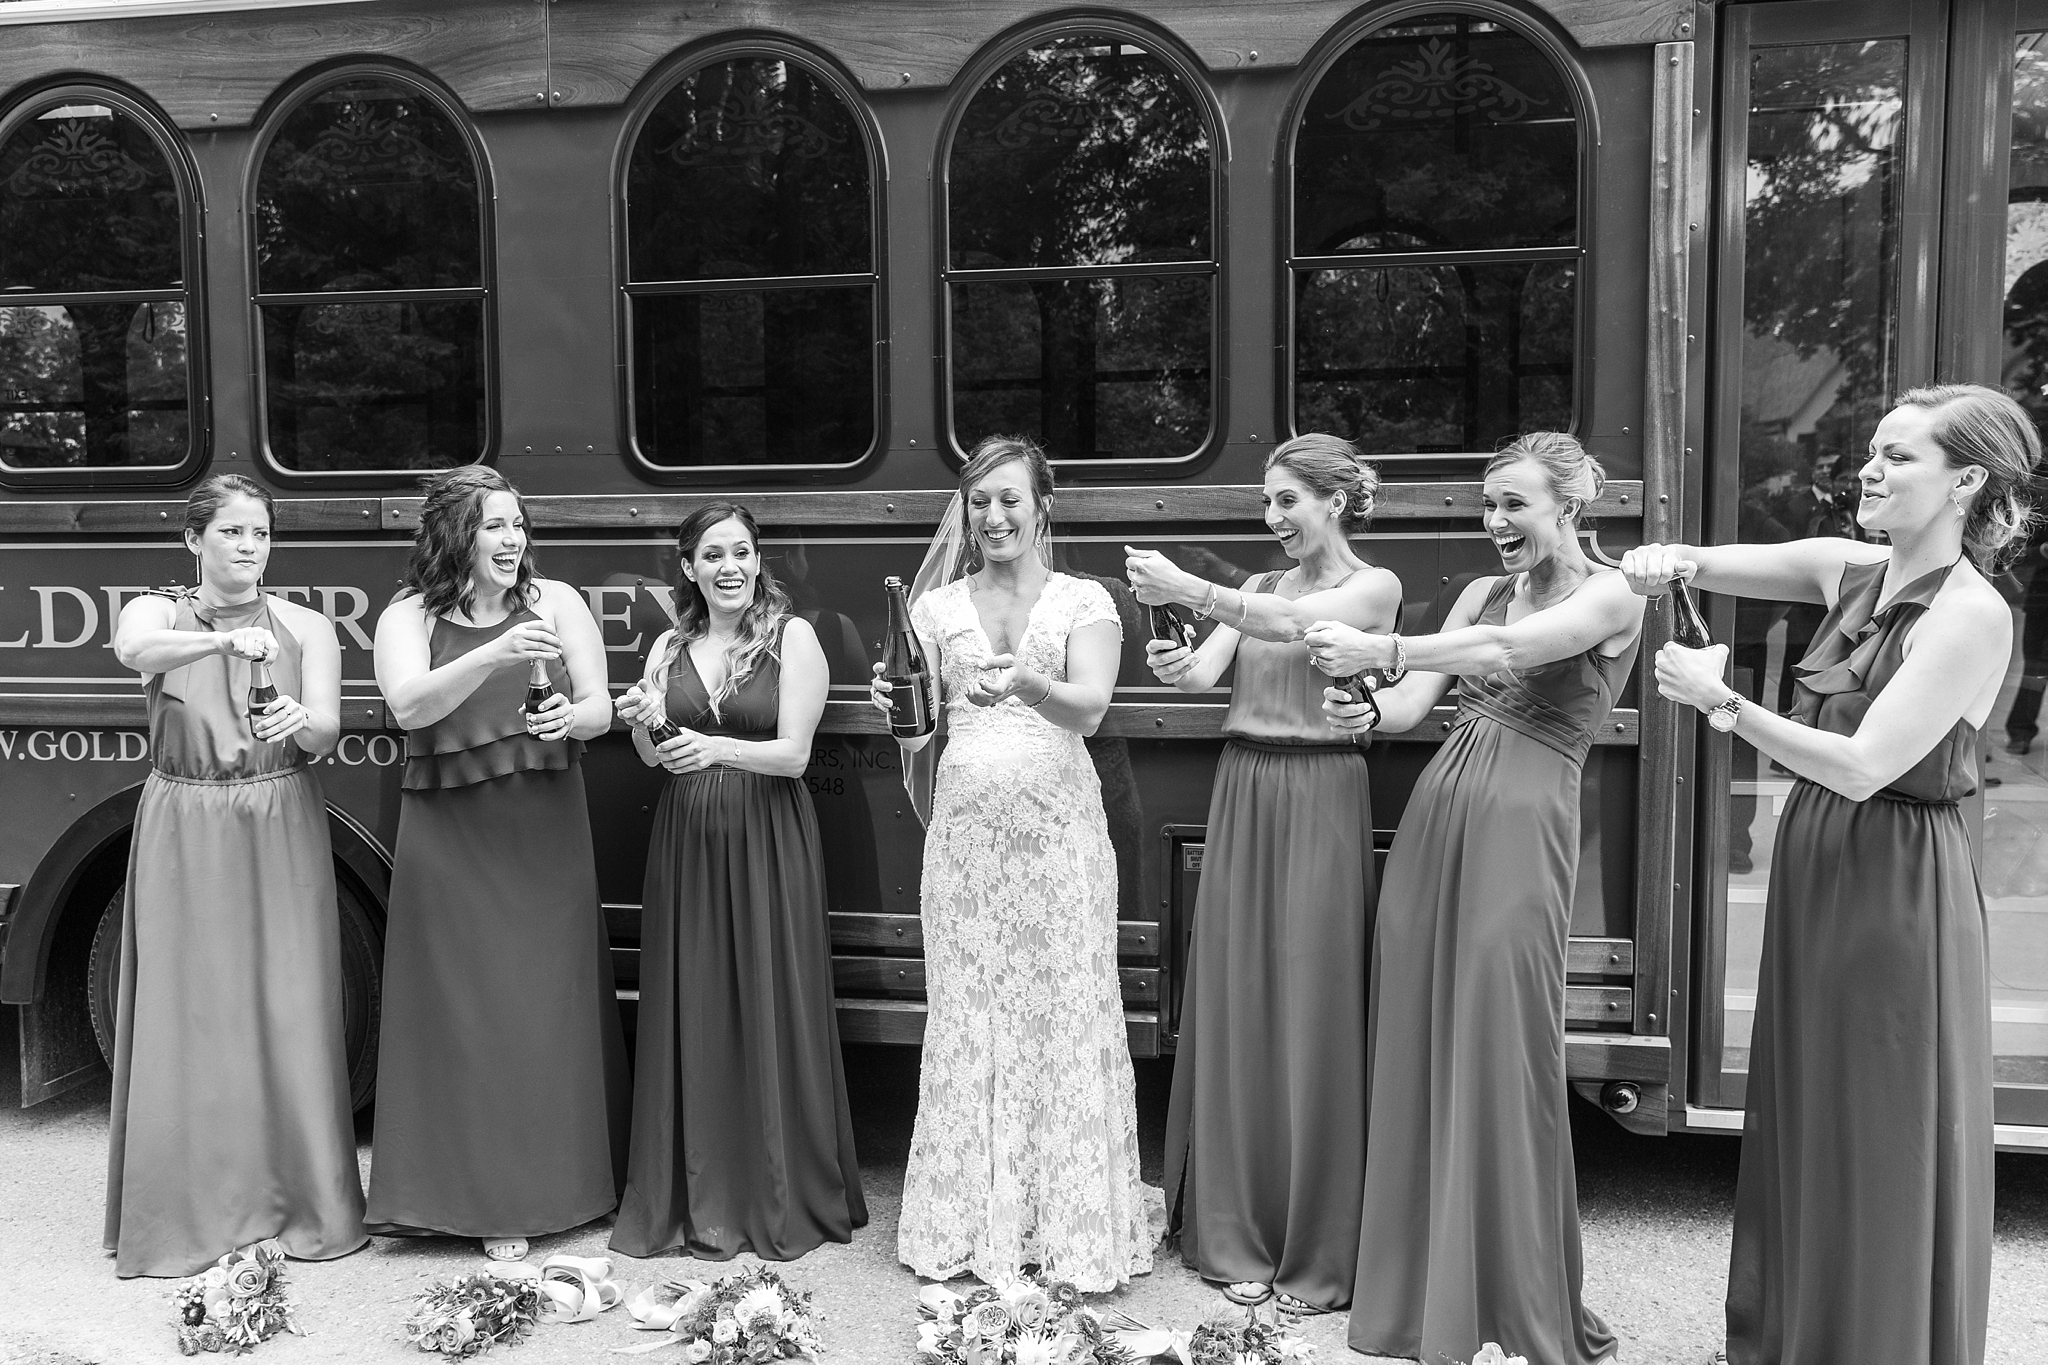 romantic-artful-candid-wedding-photos-in-detroit-lansing-ann-arbor-northern-michigan-and-chicago-by-courtney-carolyn-photography_0059.jpg